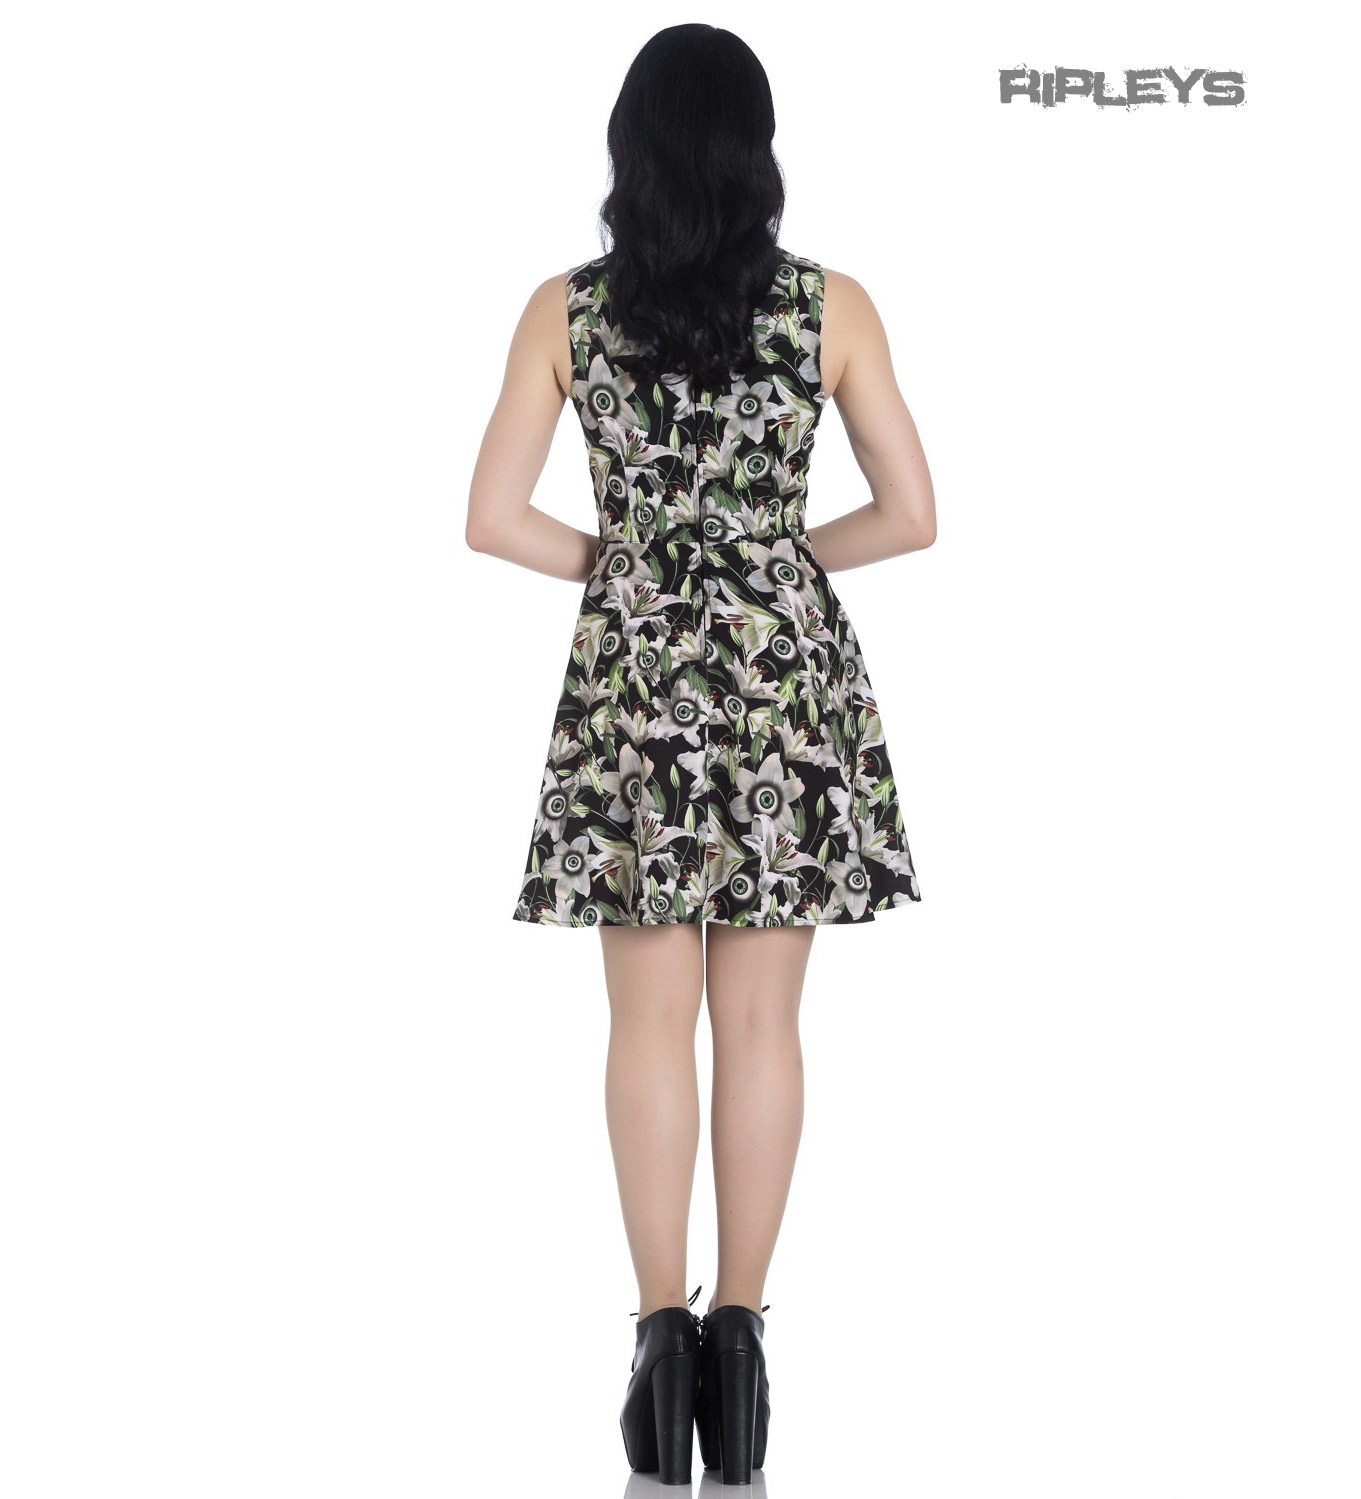 Hell-Bunny-Black-Lace-Up-Goth-Punk-Mini-Dress-PEEPERS-Eyeballs-Flowers-All-Sizes thumbnail 24